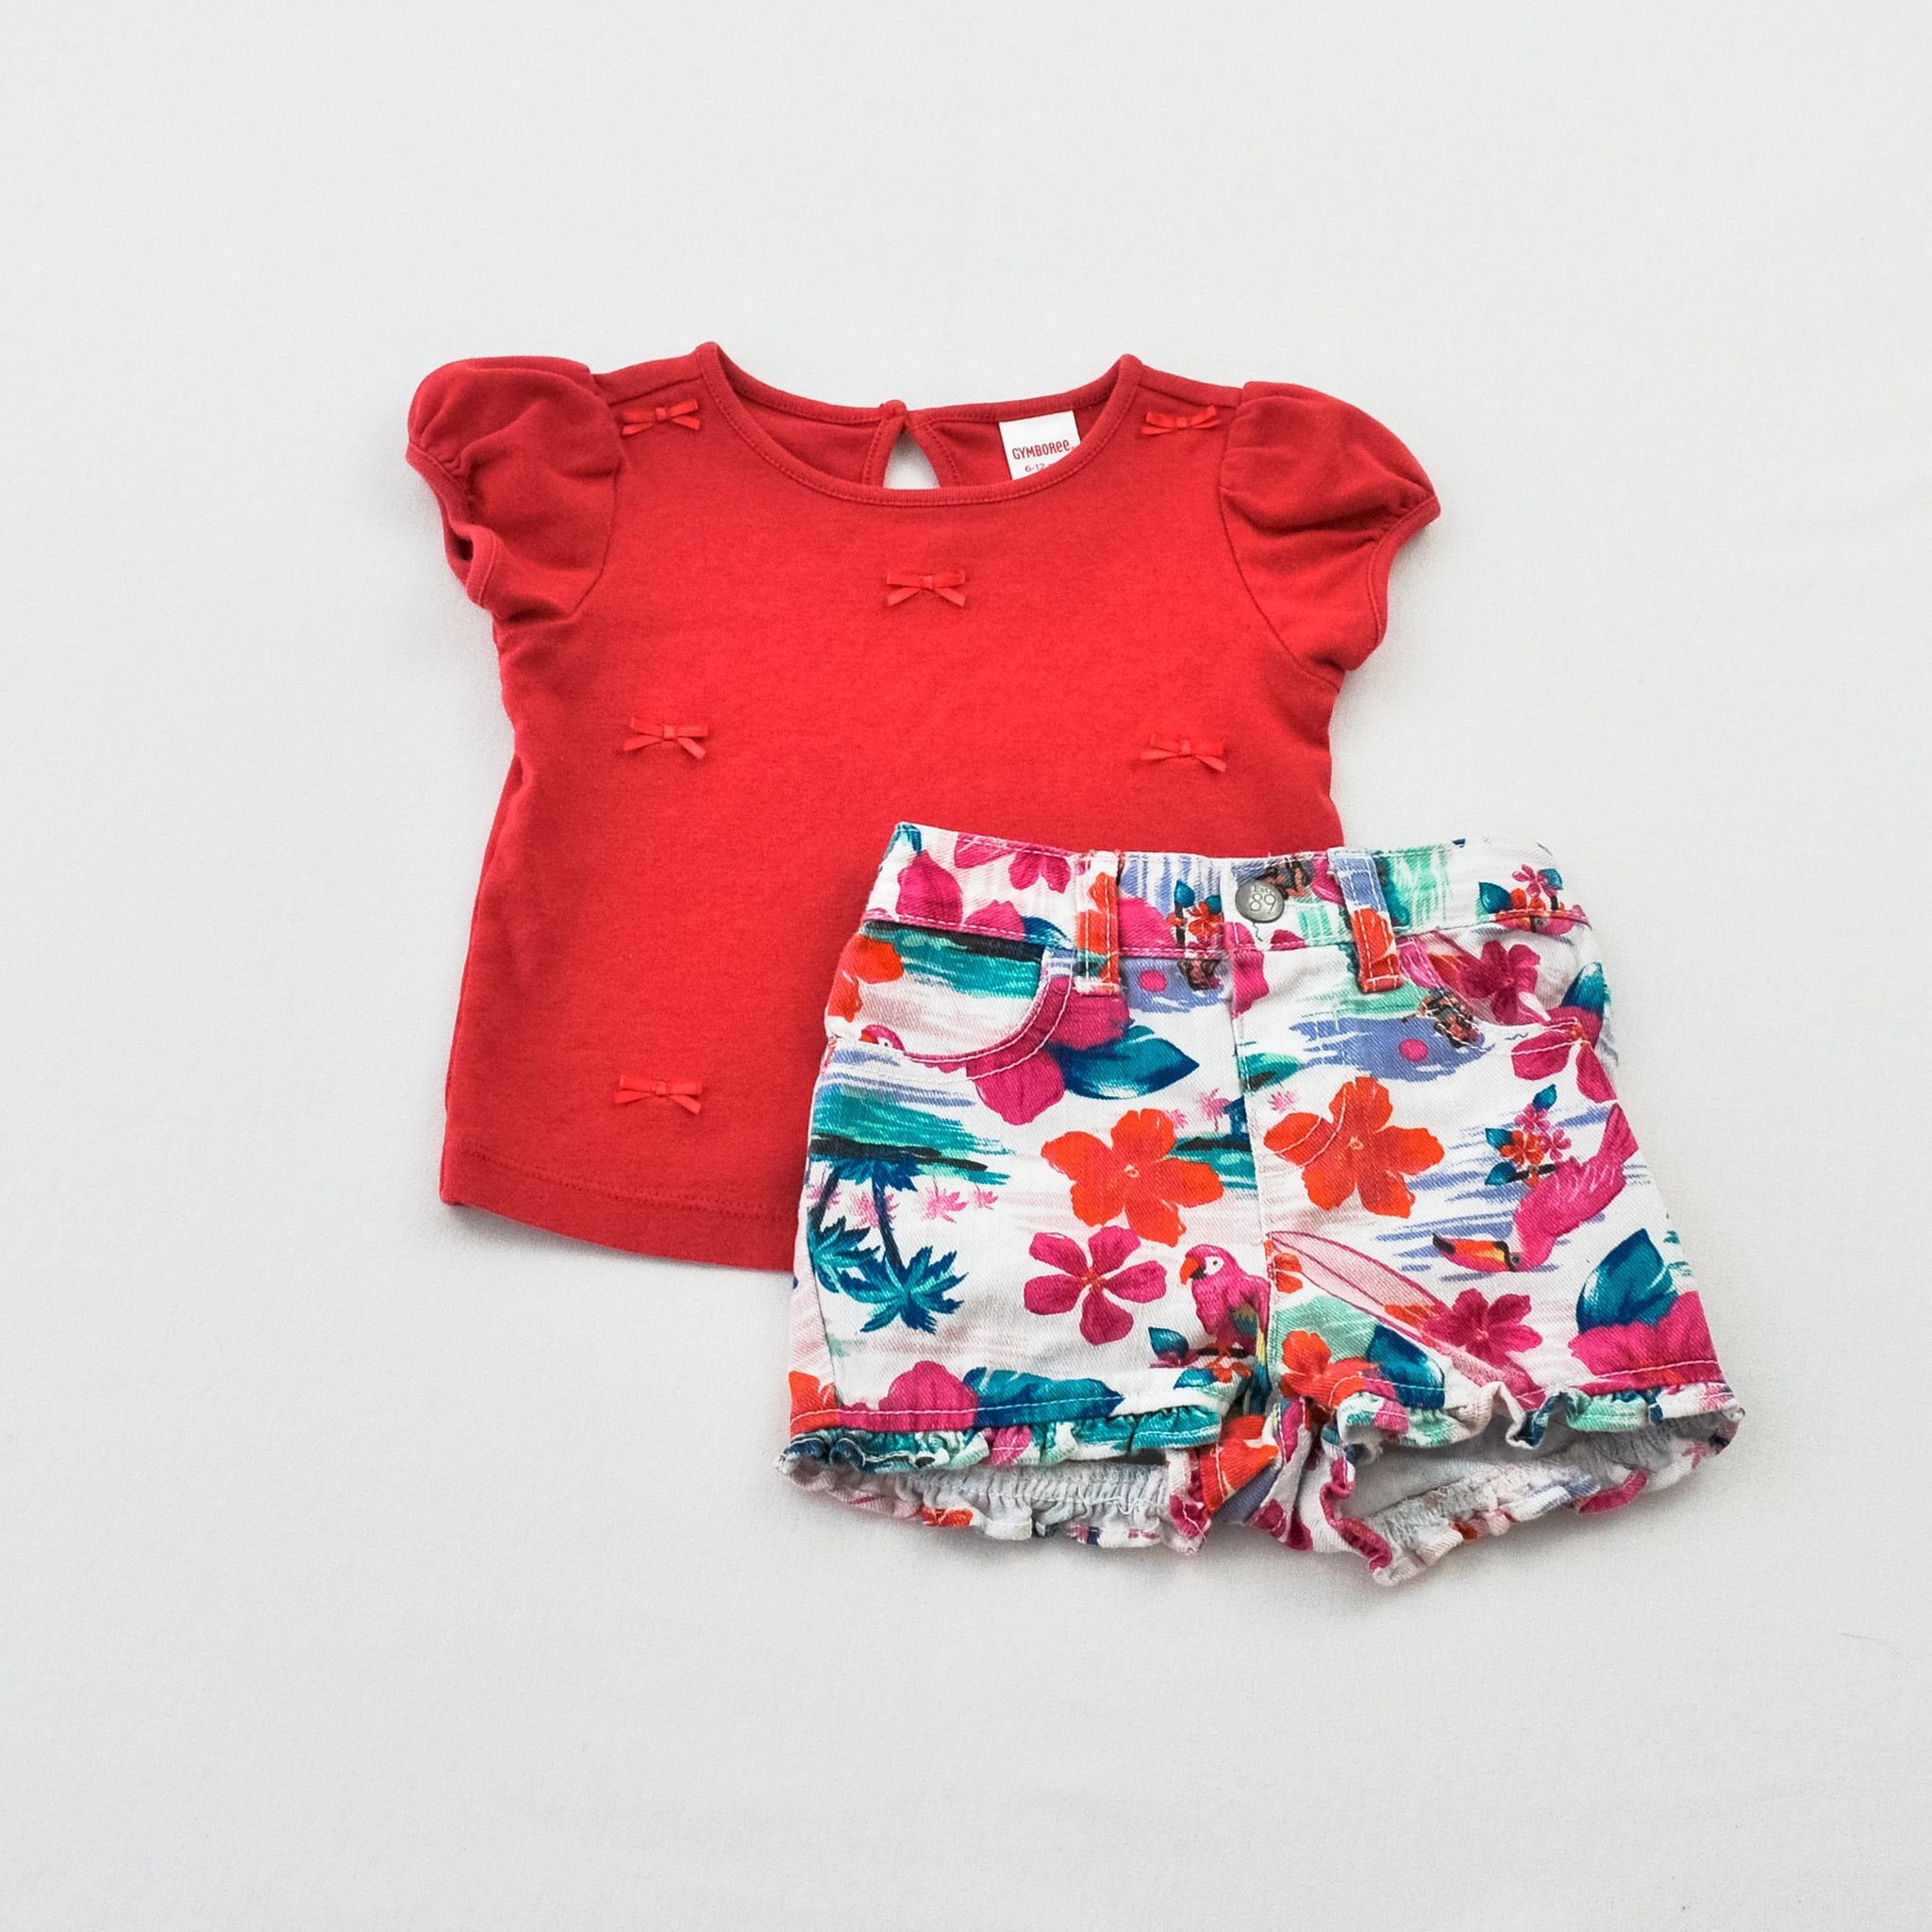 Baby Girl 9 12 Month Lot 10 Pieces Ni±a ropa Pinterest